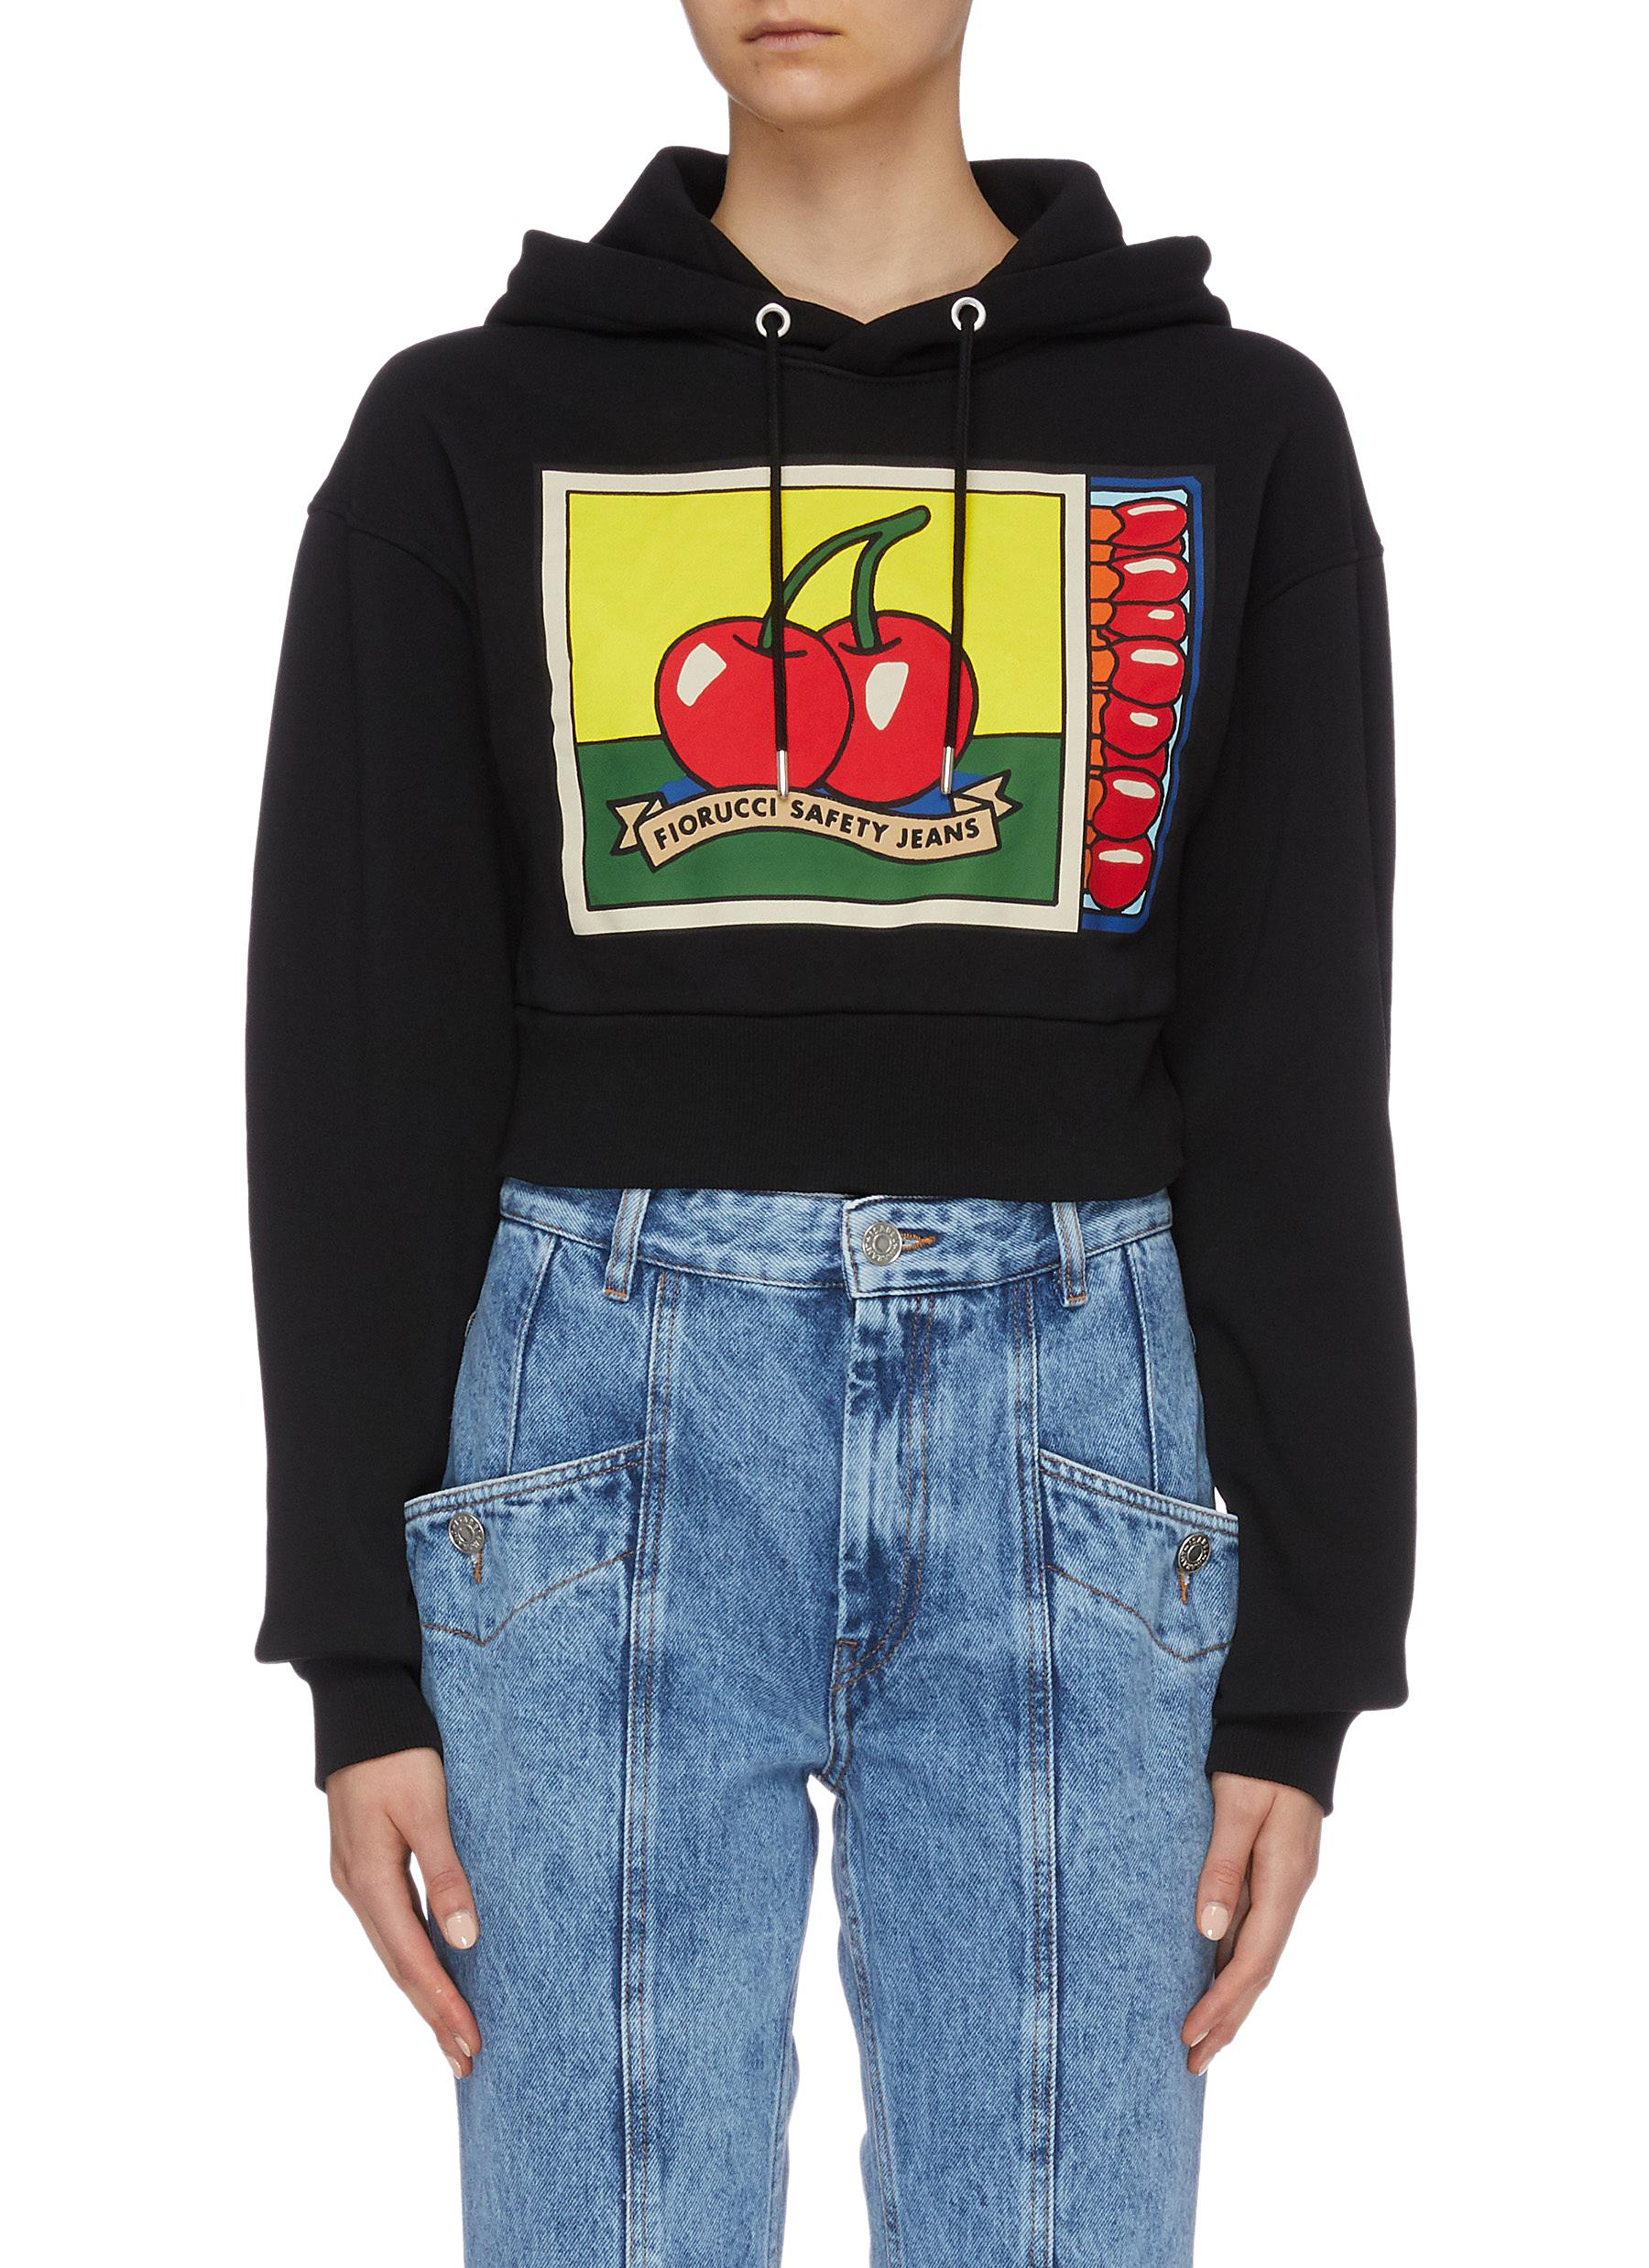 Cherries Matchbox graphic logo print cropped hoodie by Fiorucci